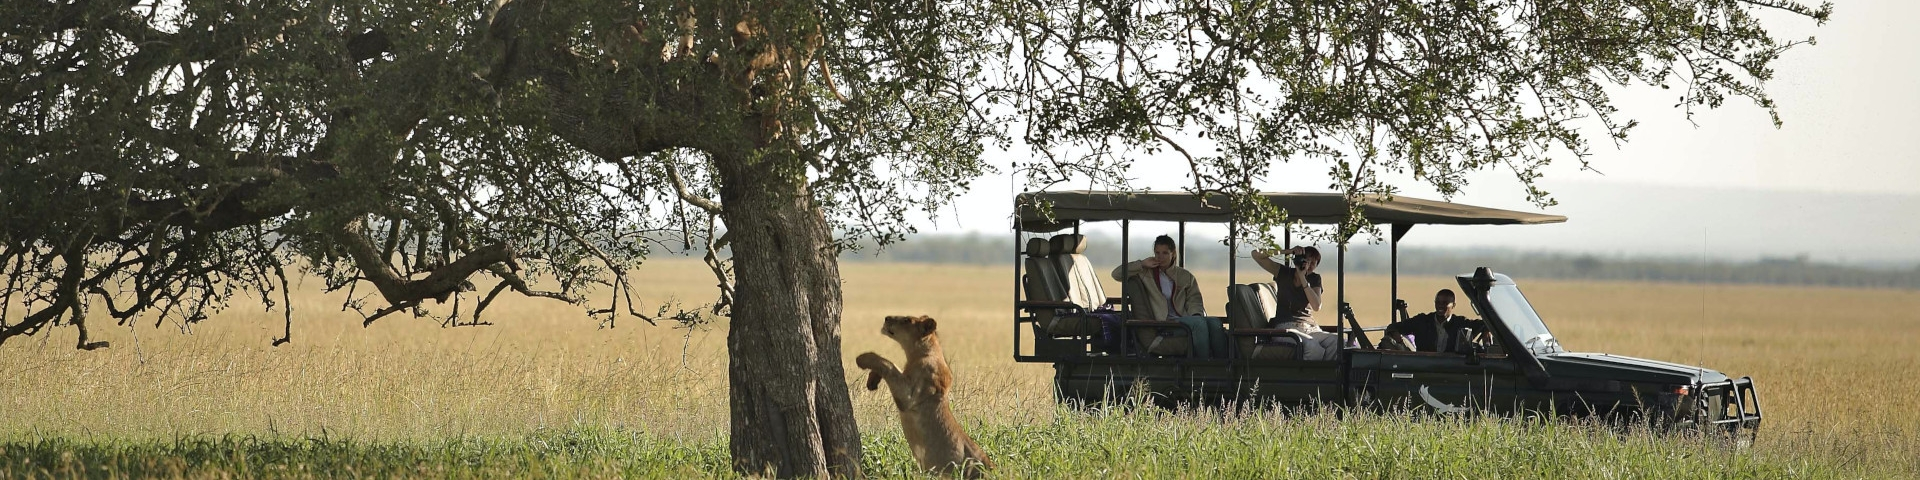 Africa Travel Guide Tanzania Serengeti National Park Game Drive